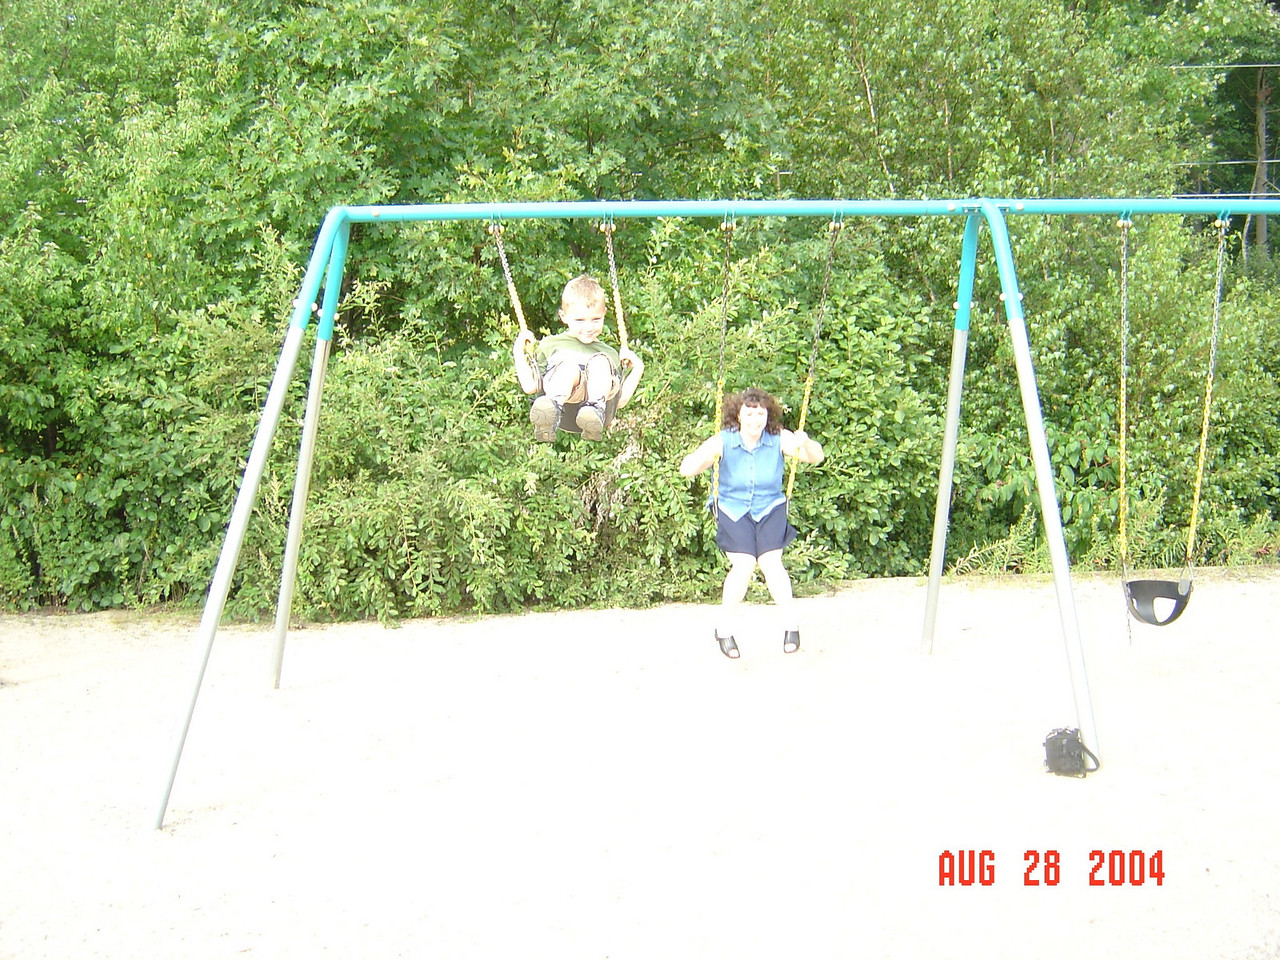 Ty_and_Mom_swing_at_Dylan's_party-08-28-04